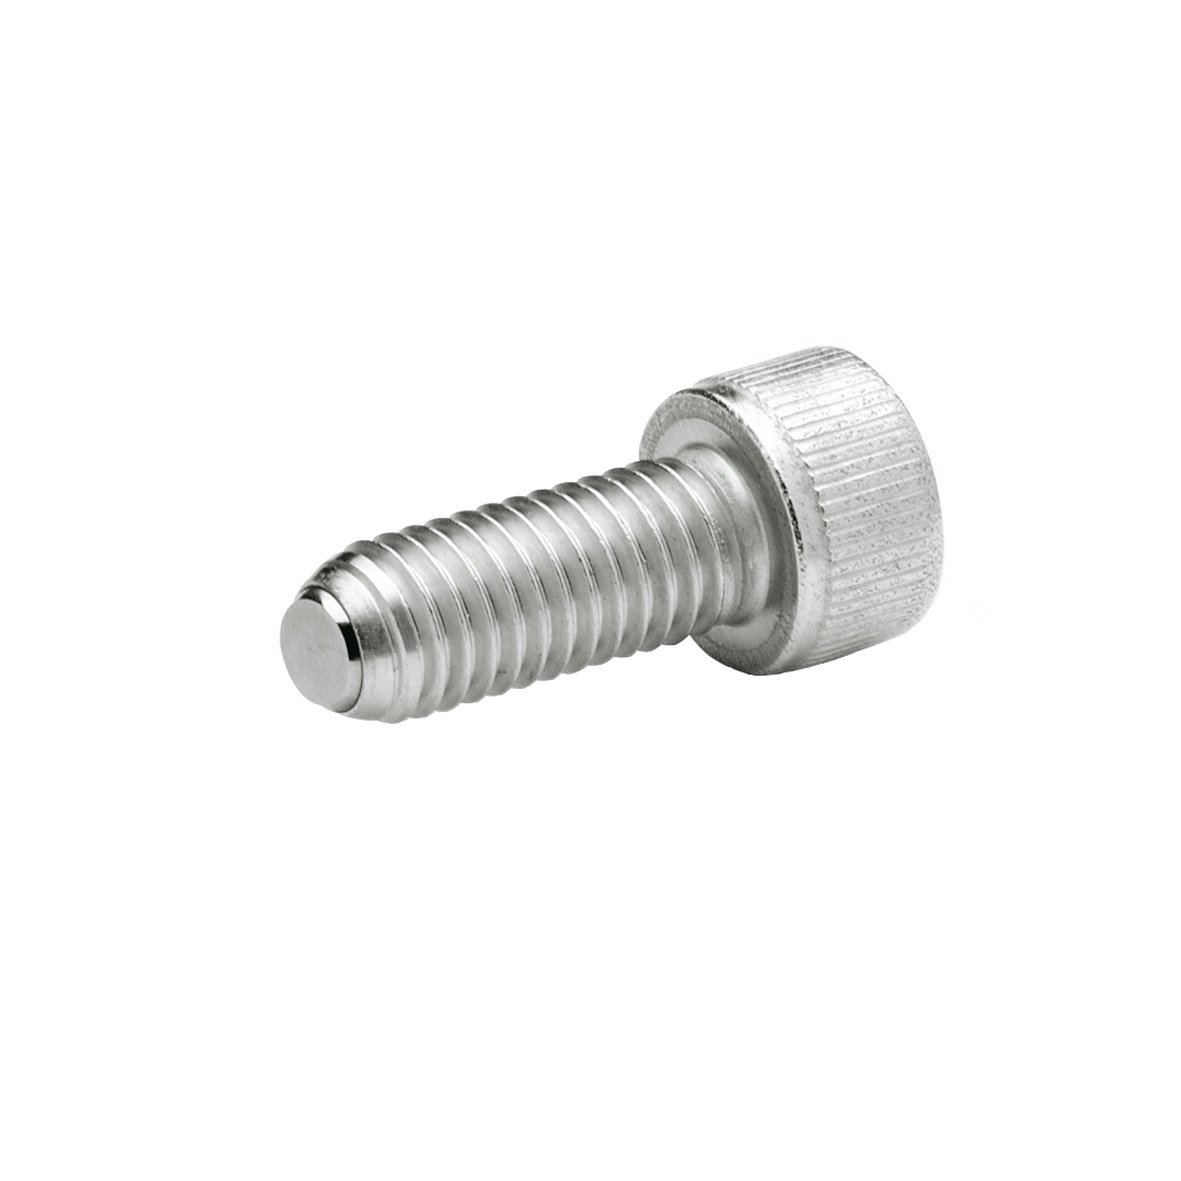 J.W. Winco 6N40P48/VN GN606-NI Socket Head Cap Screw with Flat Ball, Safety Twist Feature, M6 x 40 mm Thread Length, Stainless Steel